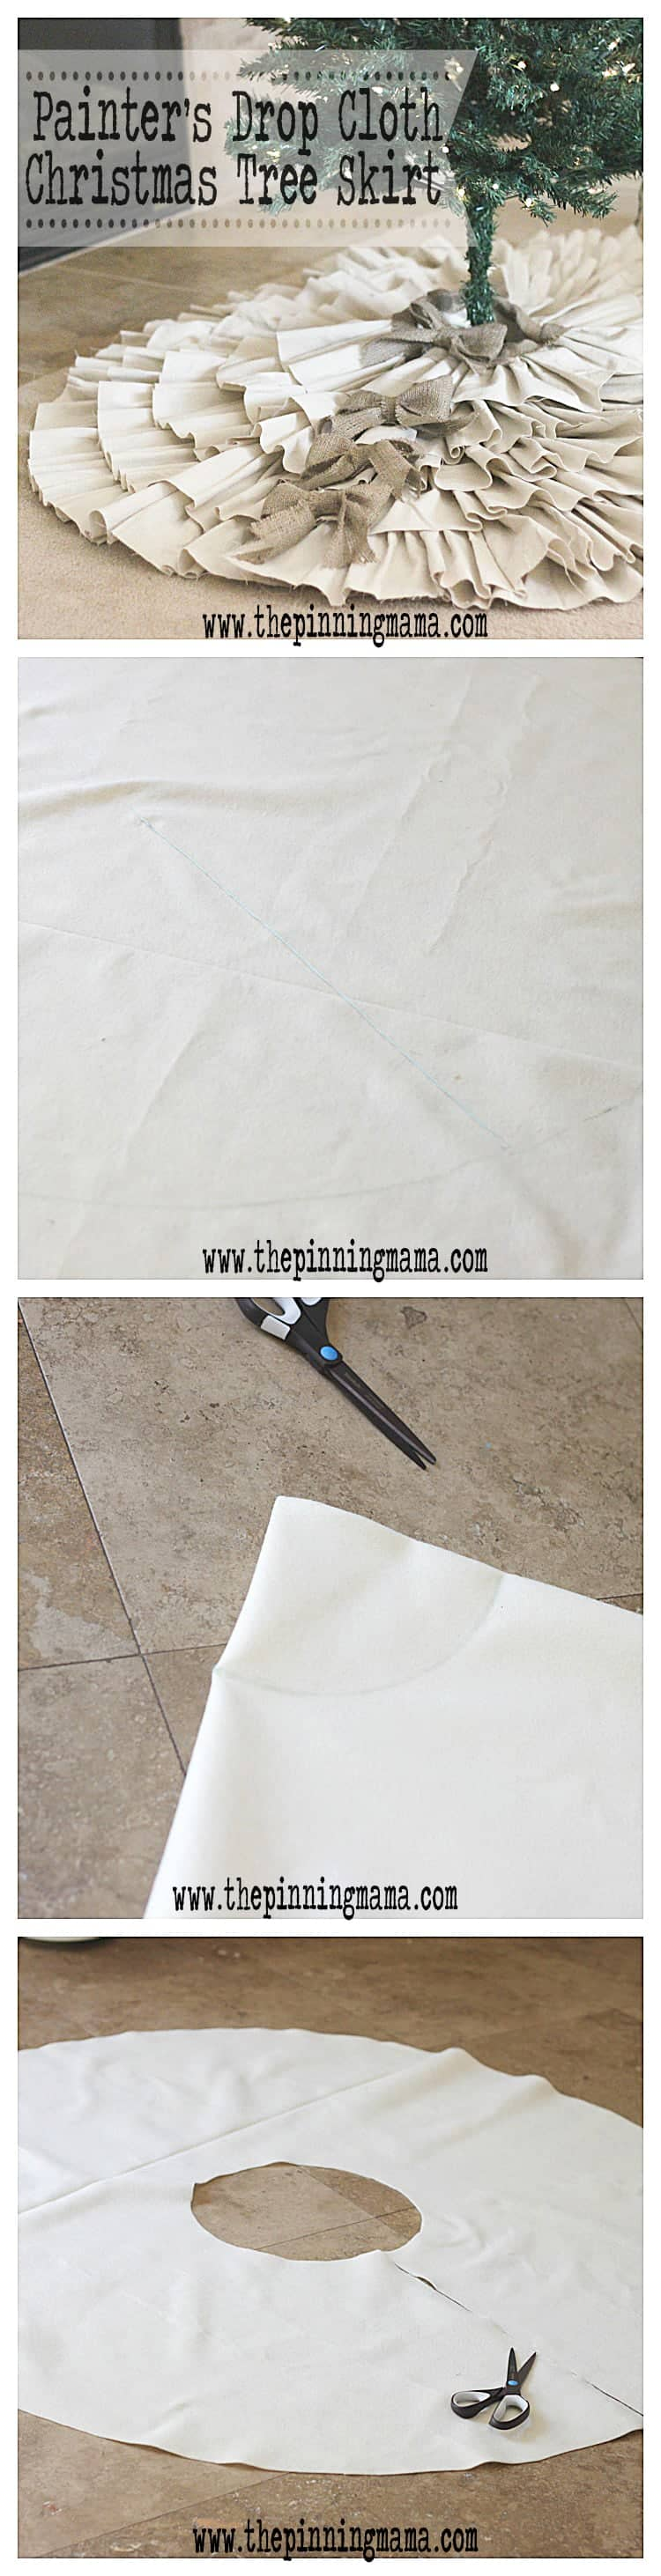 DIY Drop Cloth & Burlap Christmas Tree Skirt by www.thepinningmama.com